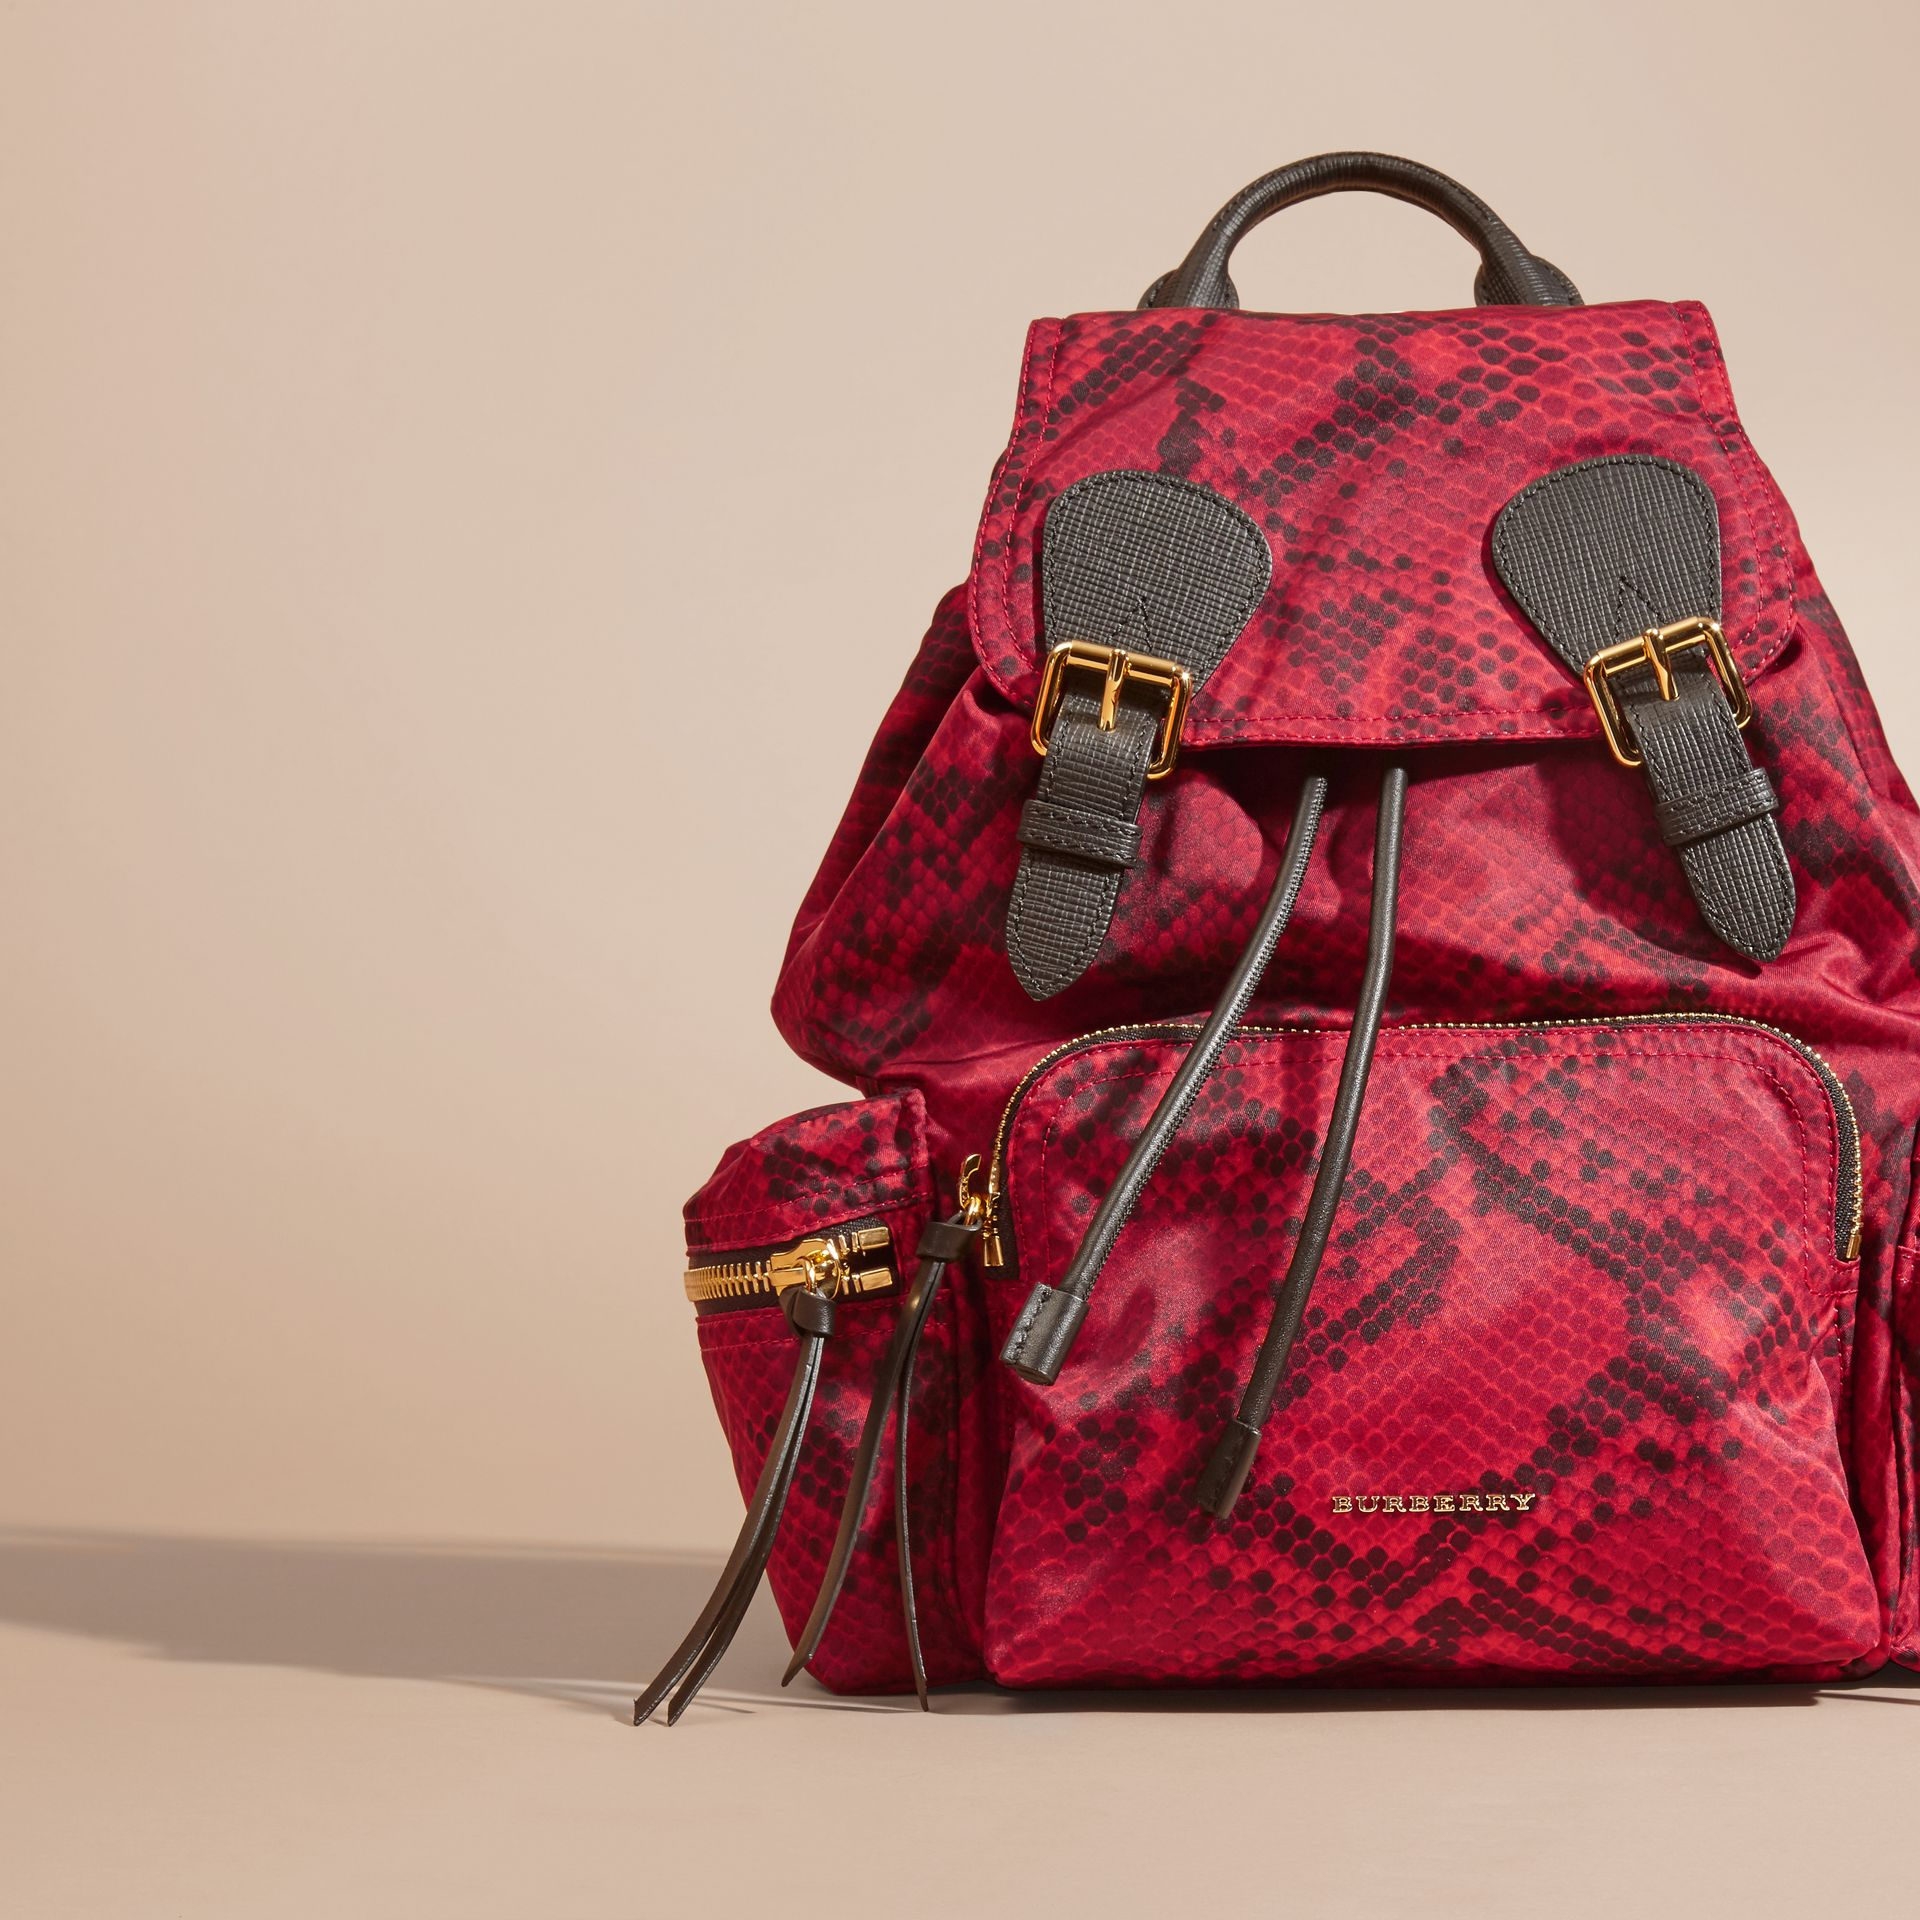 Burgundy red The Medium Rucksack in Python Print Nylon and Leather Burgundy Red - gallery image 7